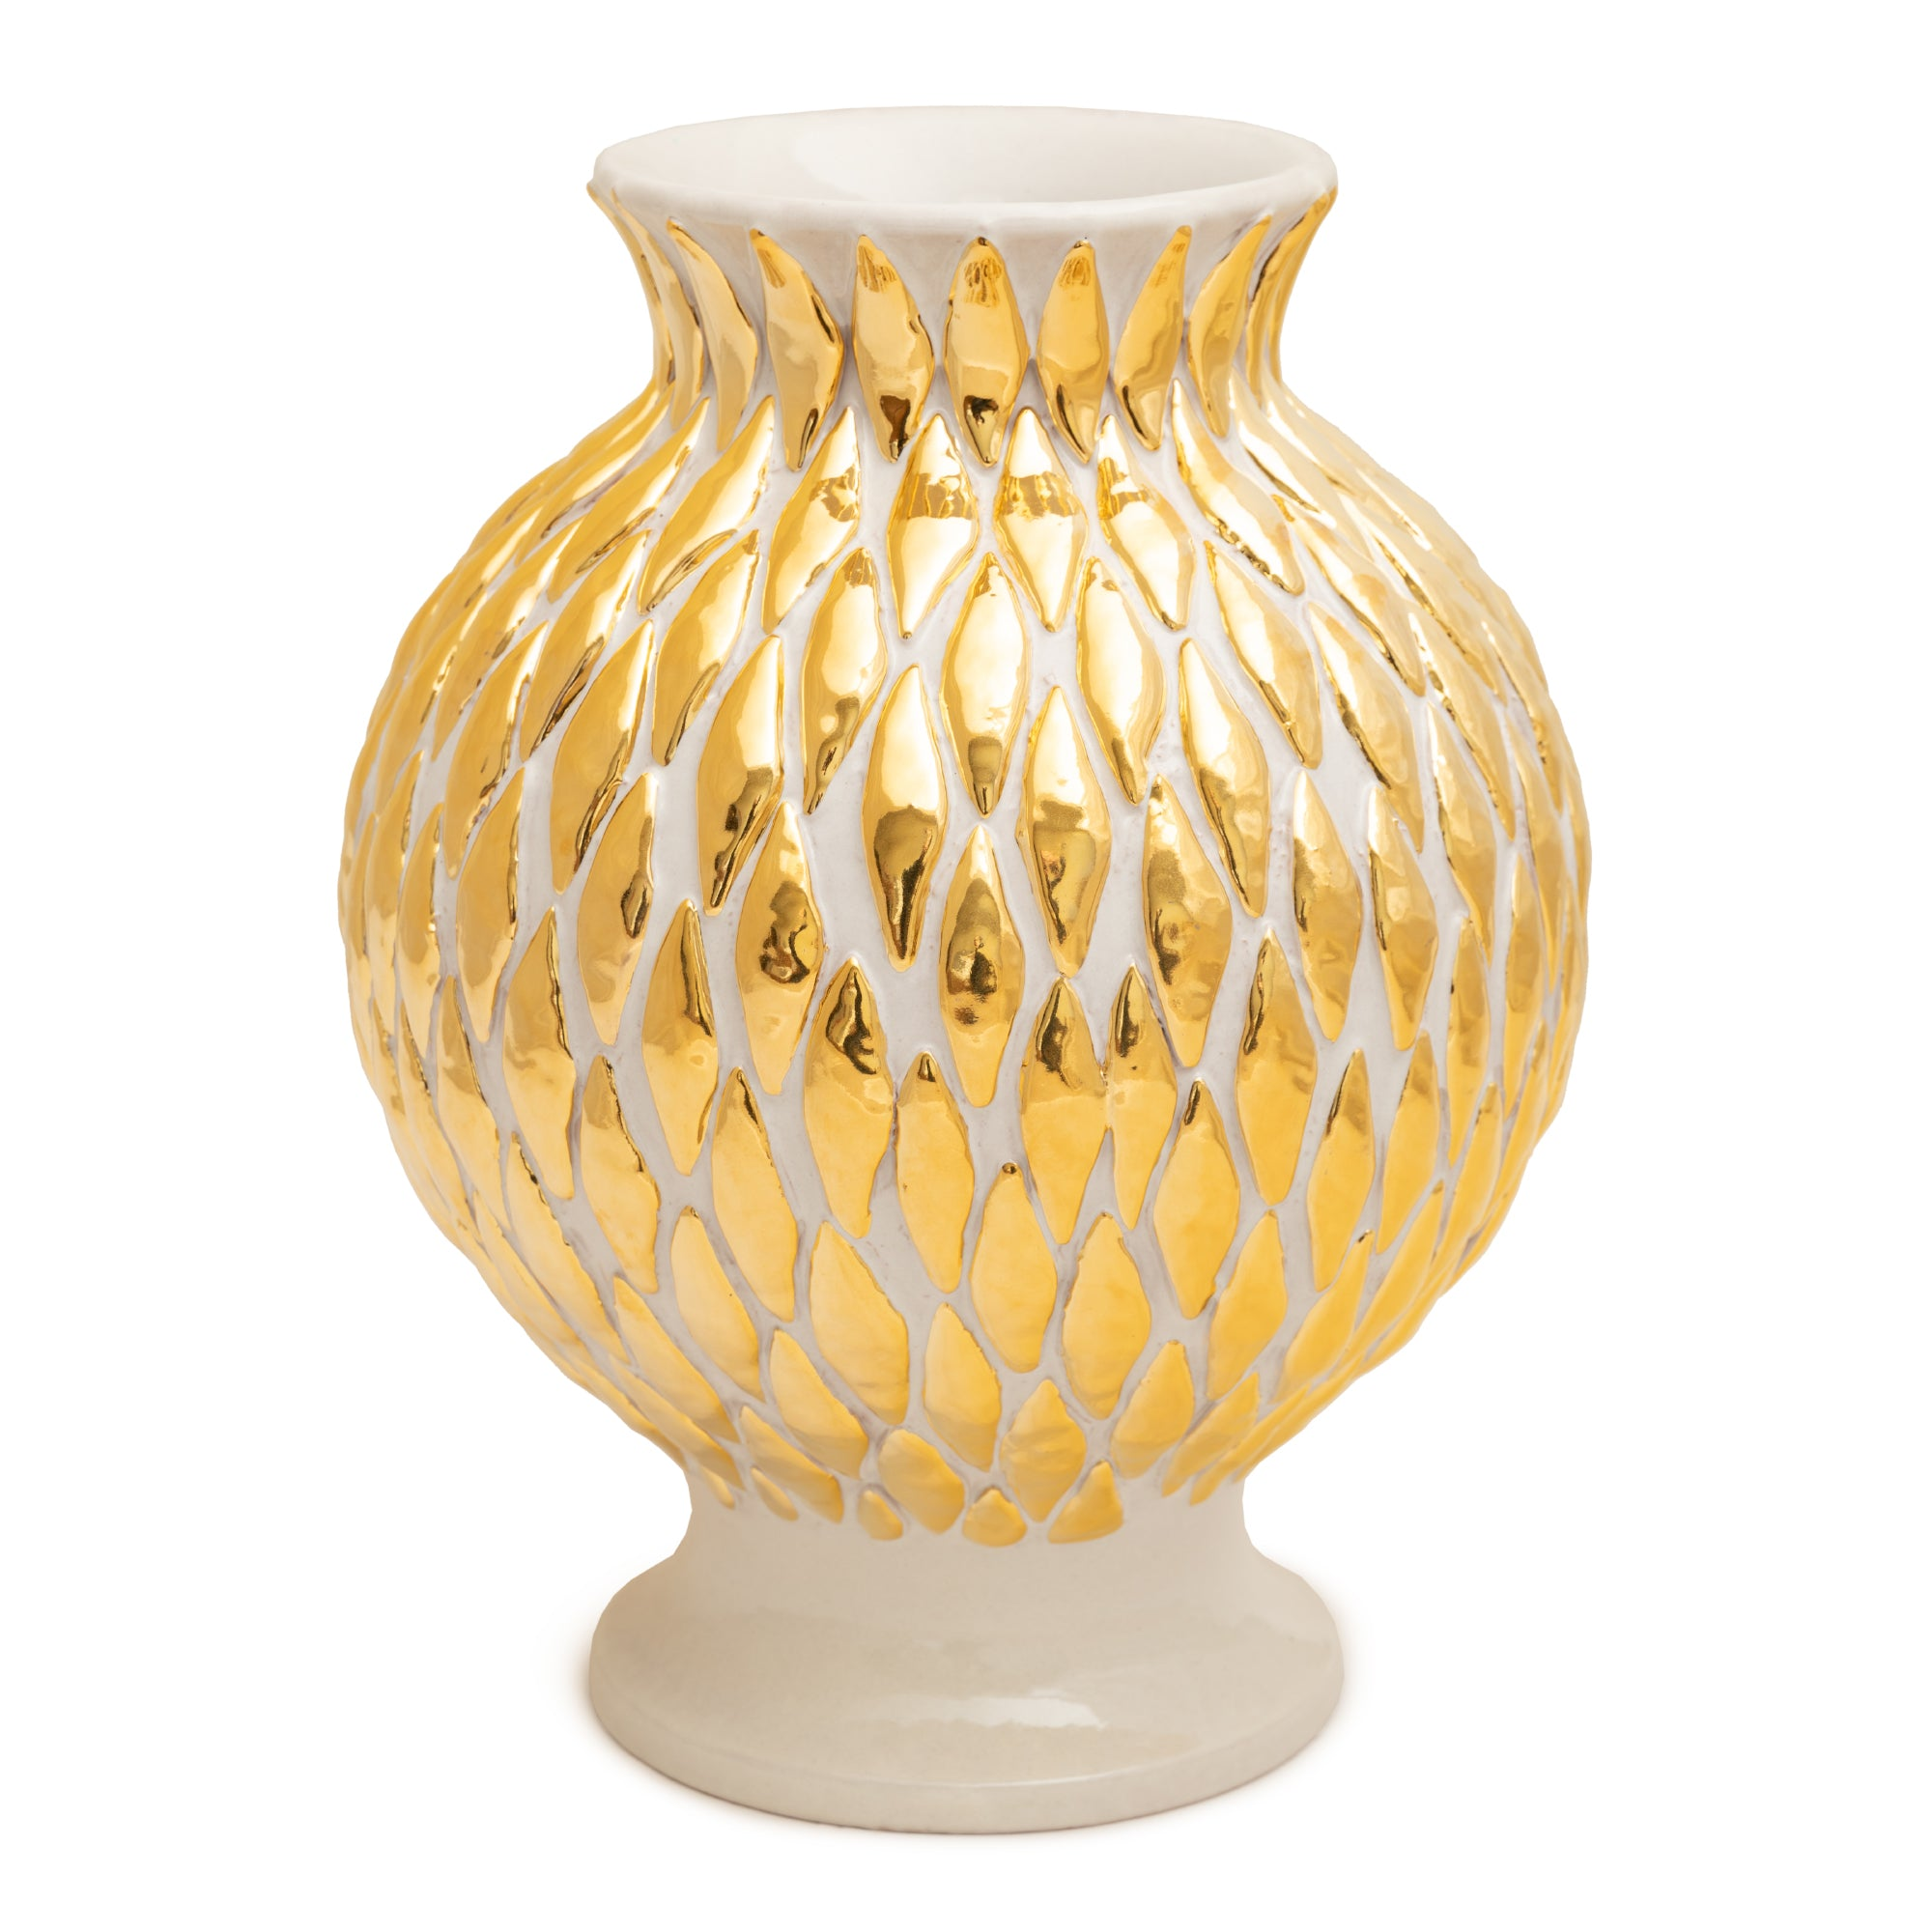 ND Dolfi 24 Karat Gold and Cream Diamond Vase